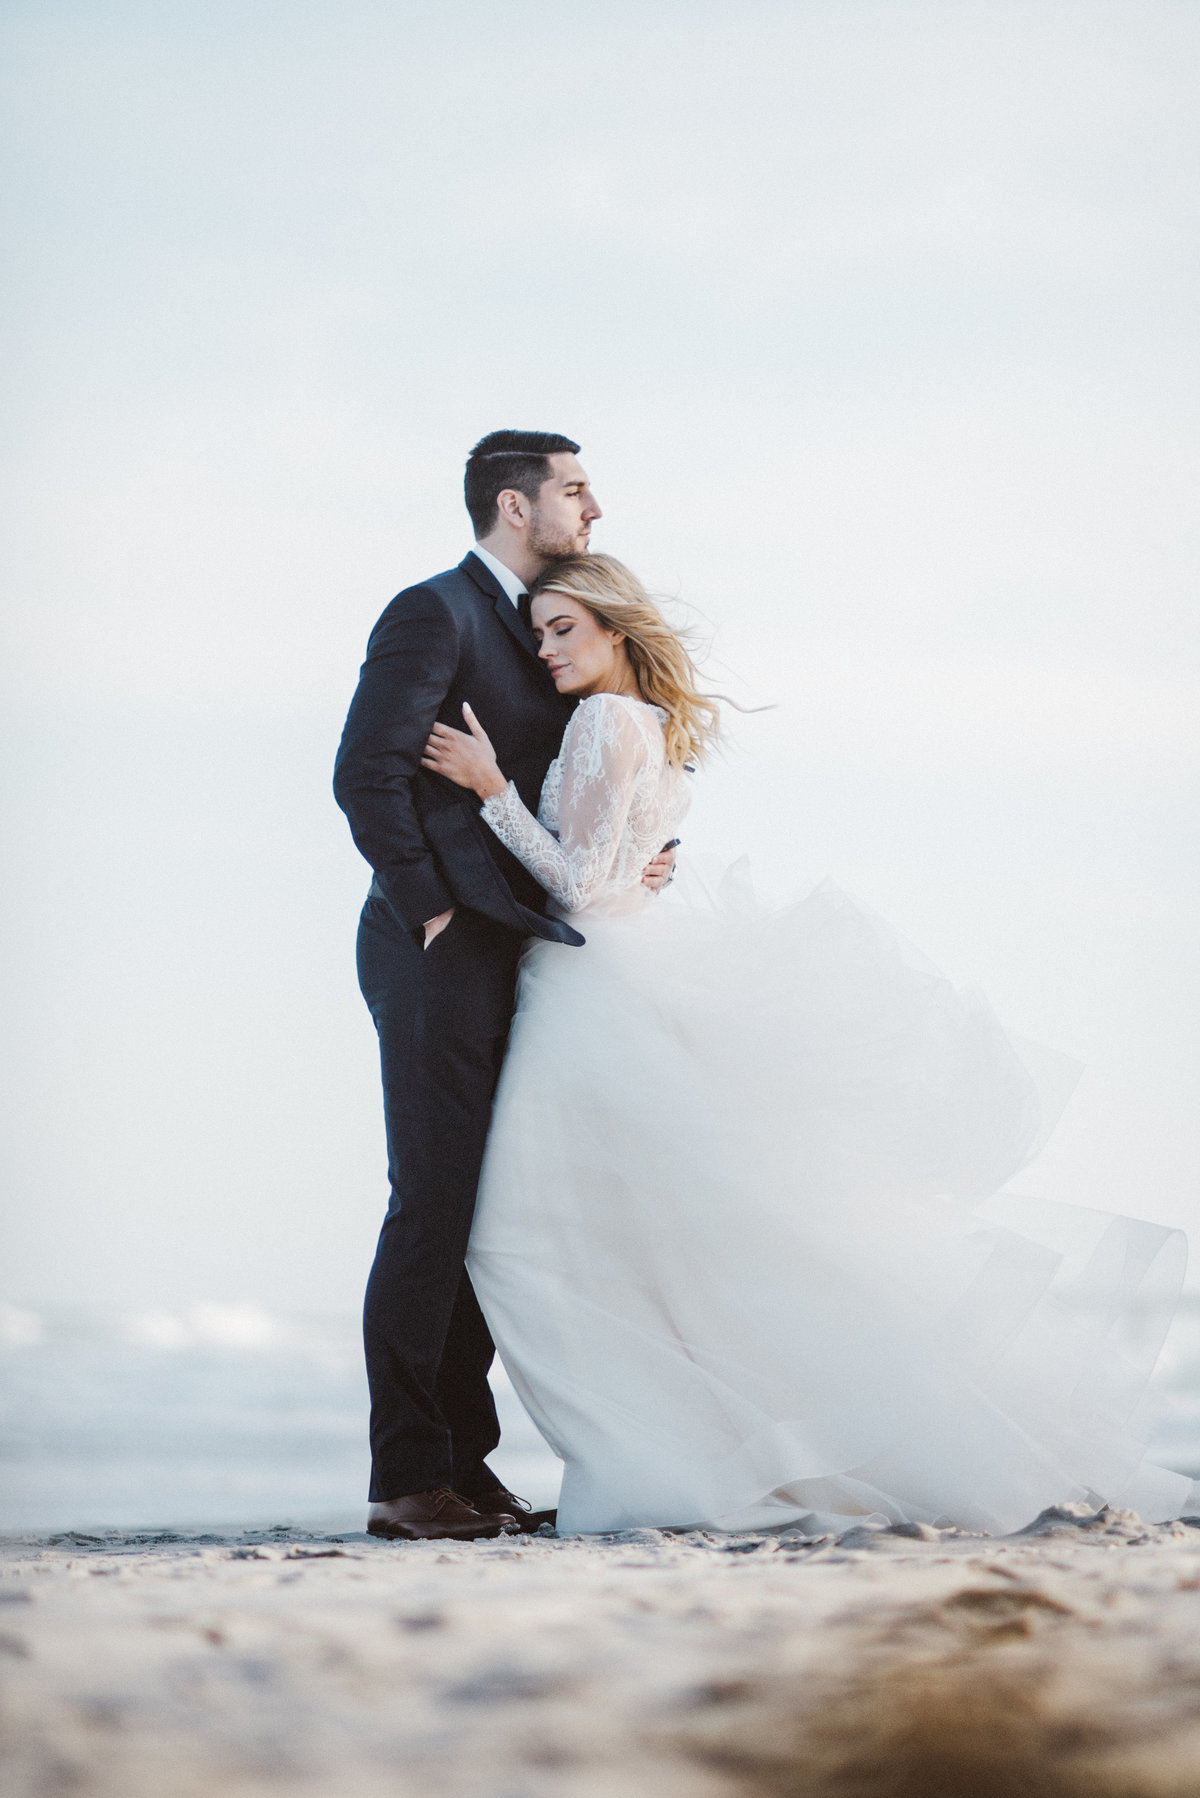 wilmington_beach_elopement_2016-48